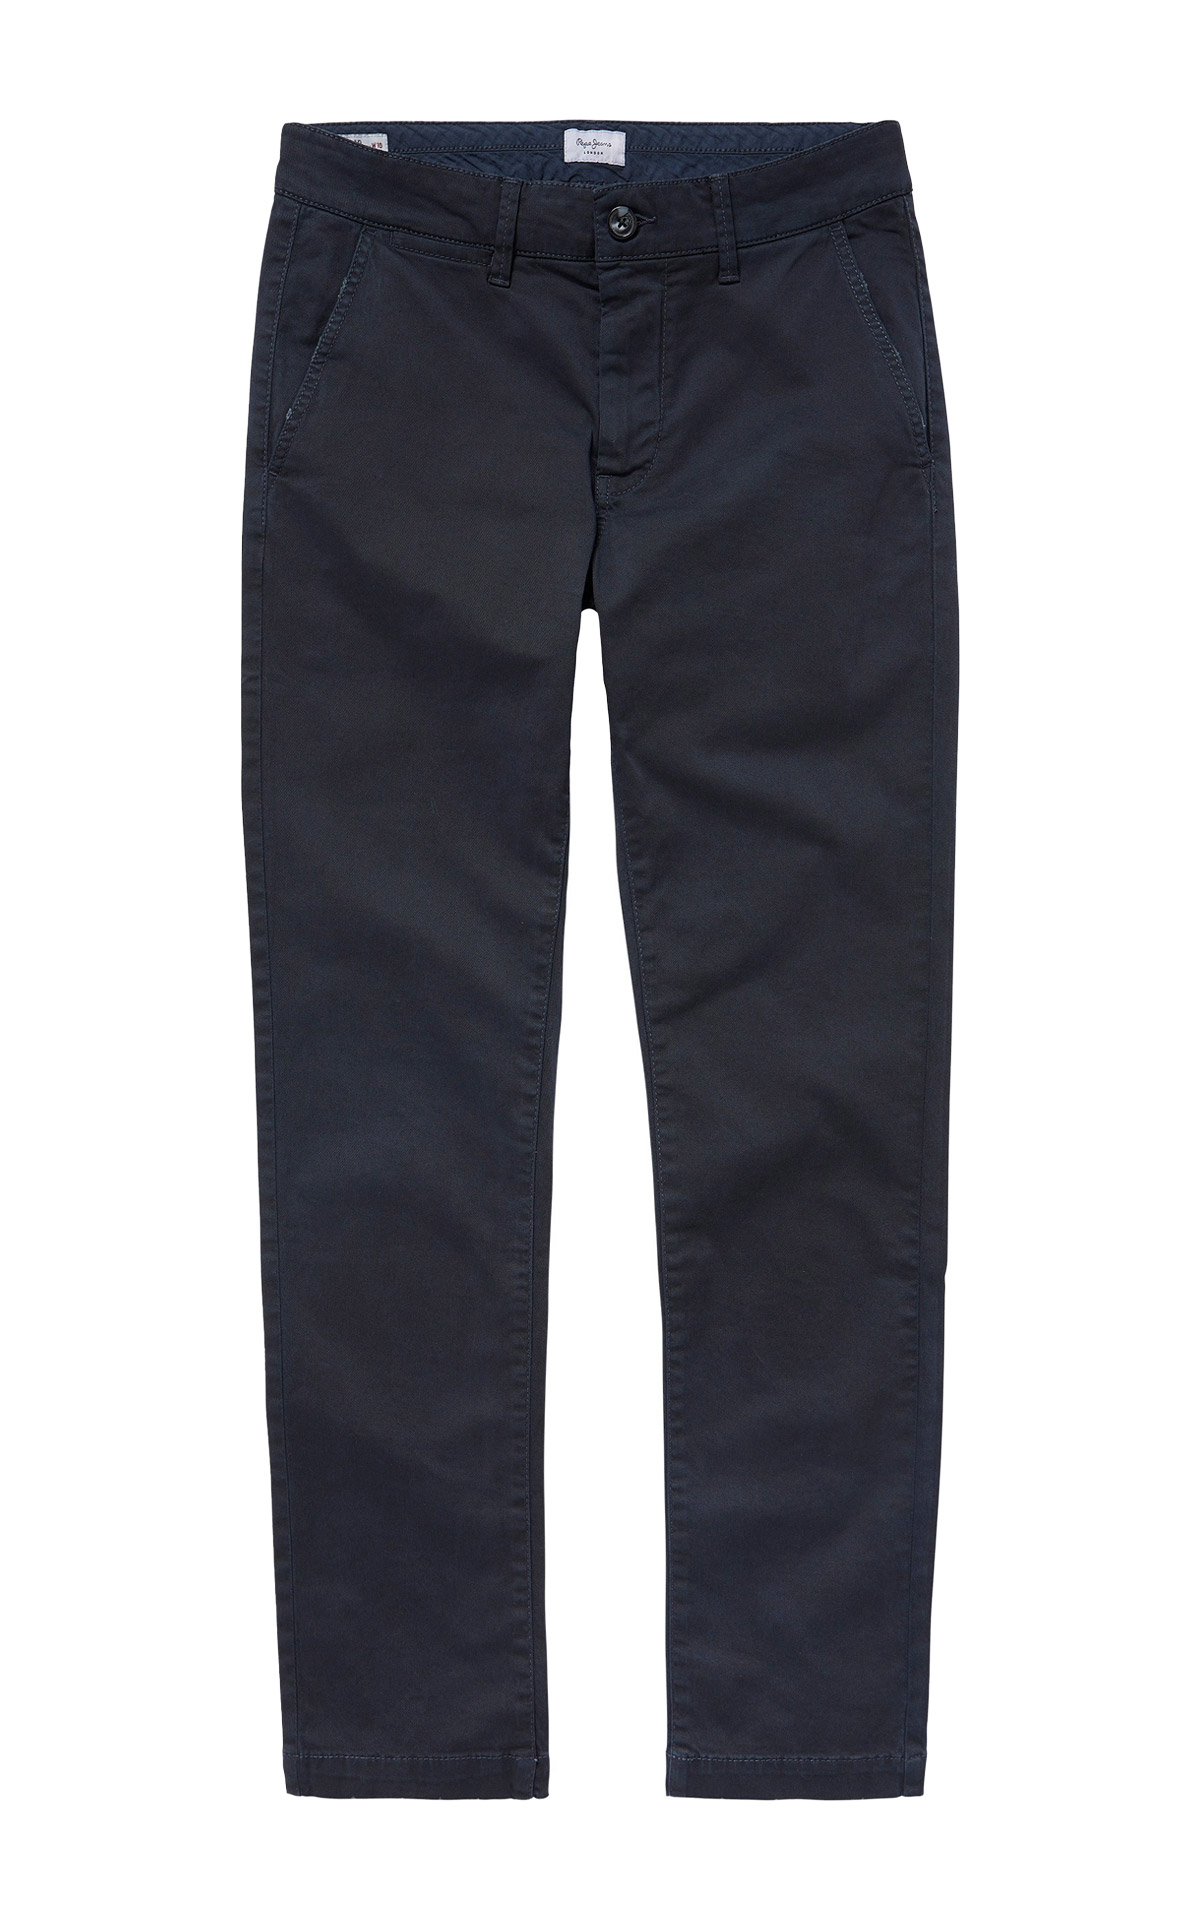 Black trousers Pepe Jeans